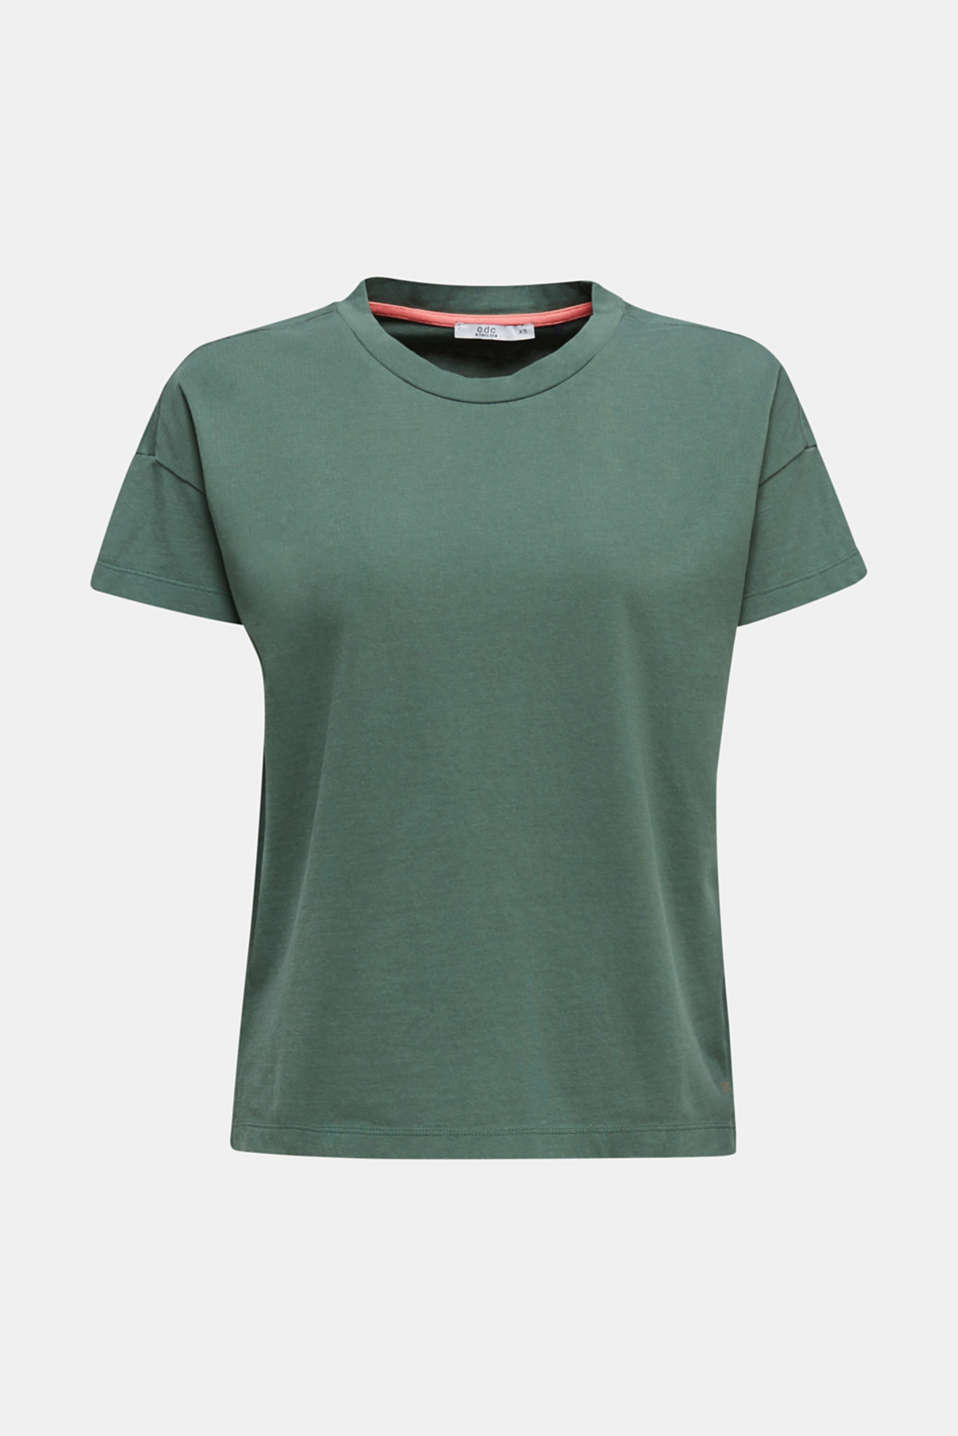 Loose T-shirt in 100% cotton, KHAKI GREEN 4, detail image number 6